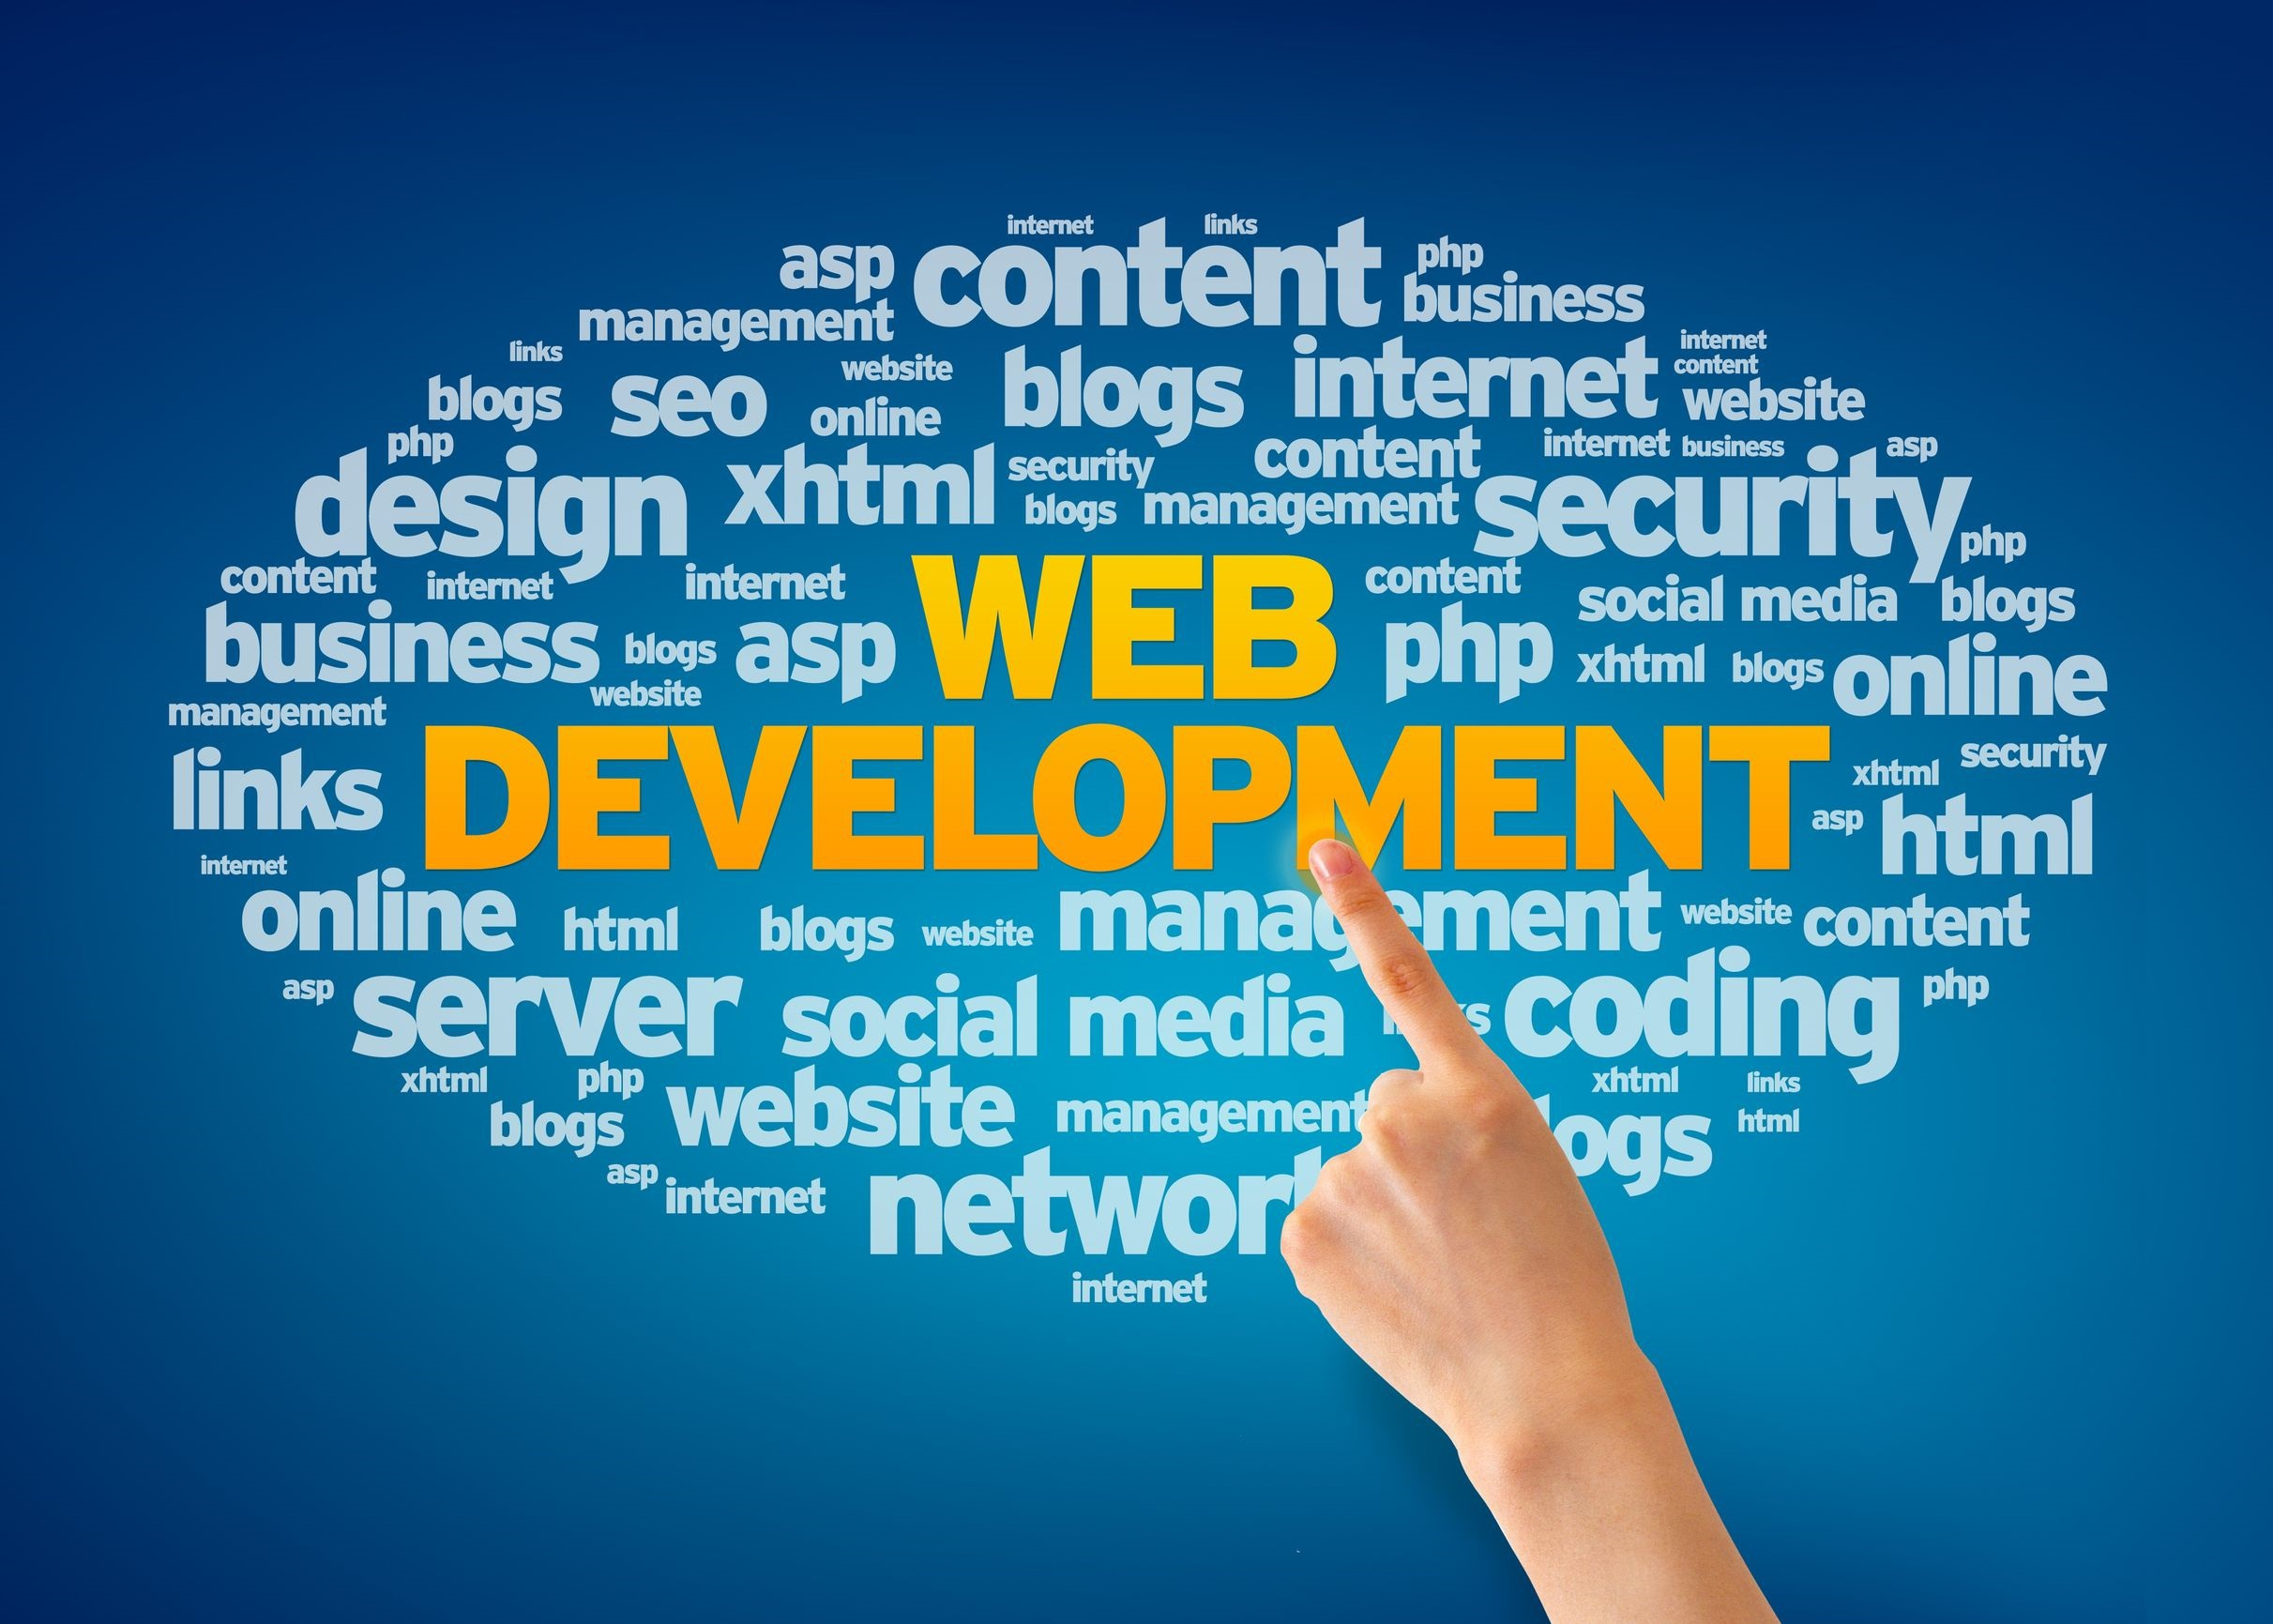 Baltimore Web Design - Baltimore SEO